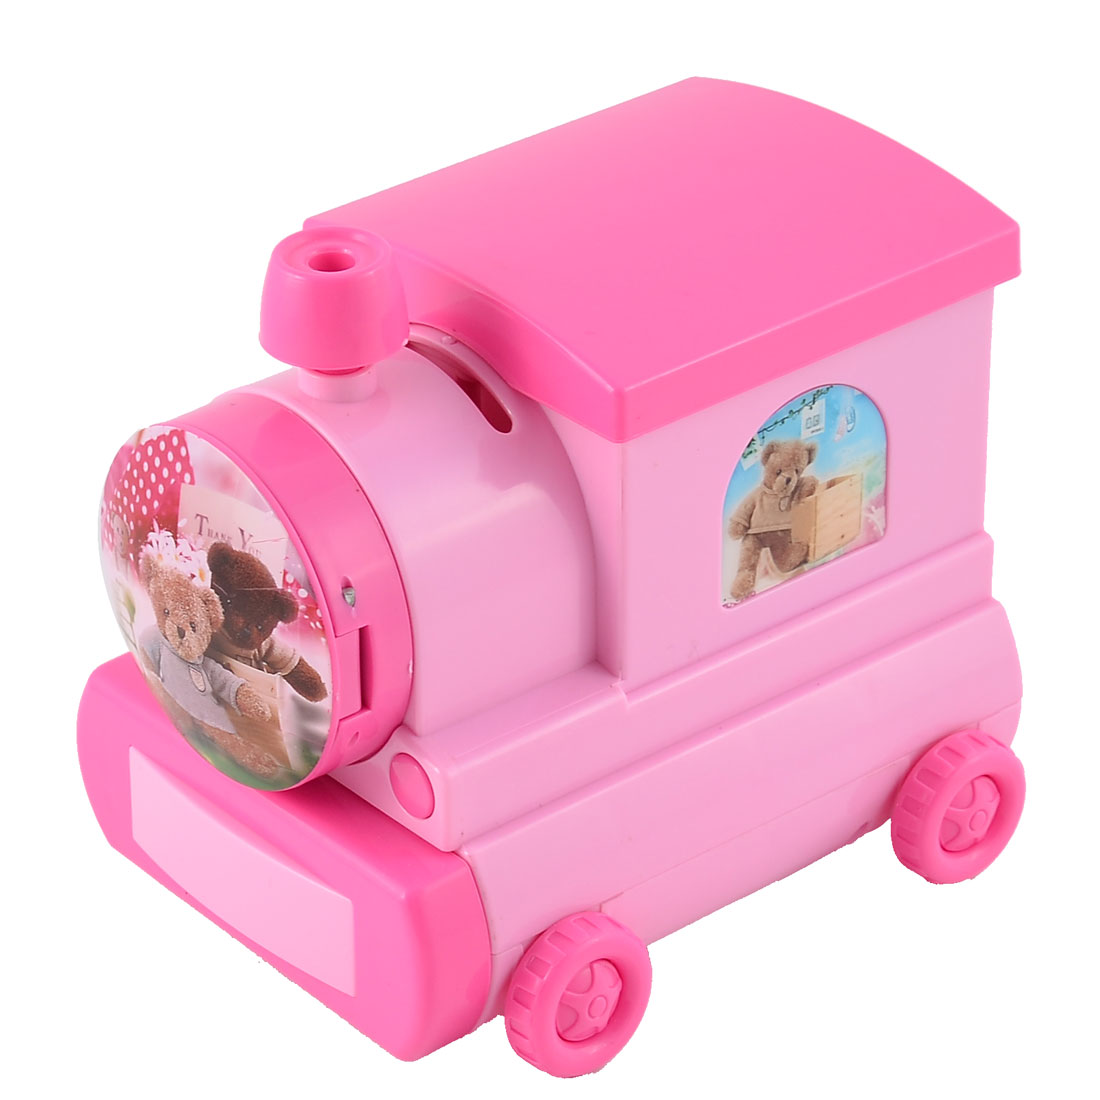 Birthday Gift Plastic Locomotive Shaped Little Bear Pattern Money Box Music Box Desktop Decor Pink